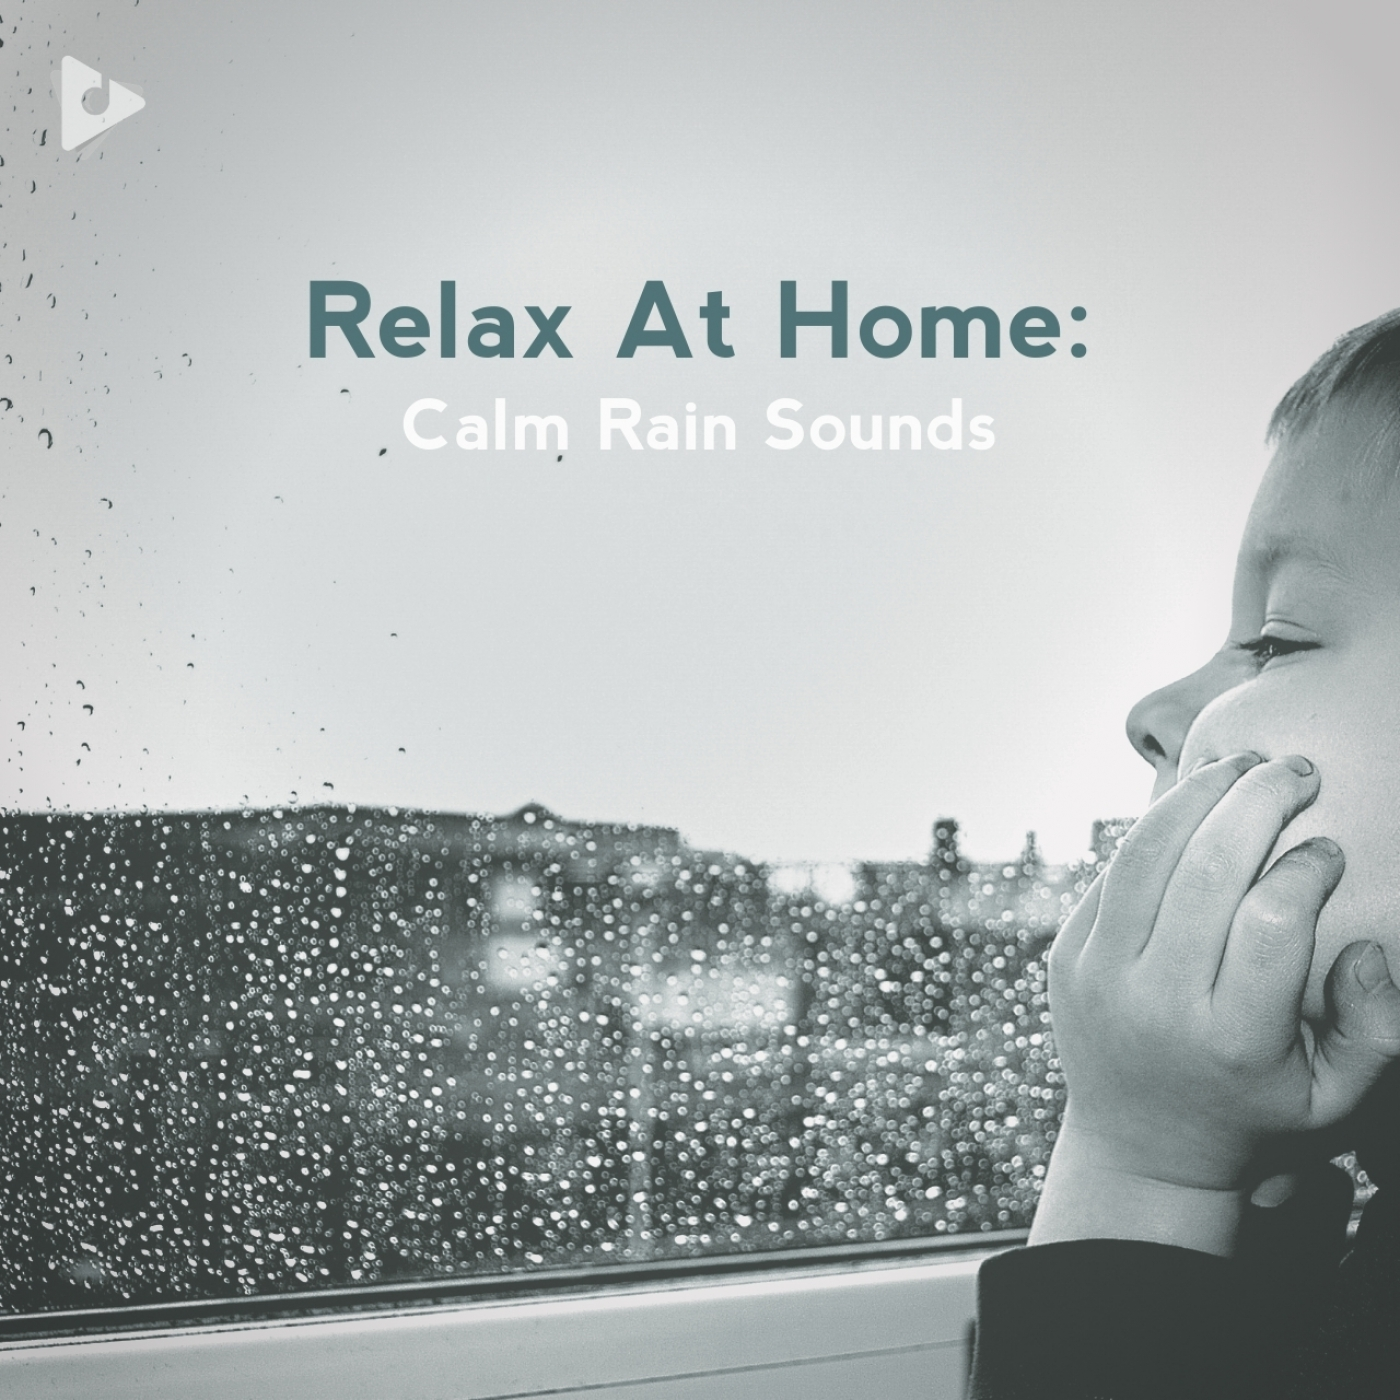 Stay-at-Home: Calm Rain Sounds